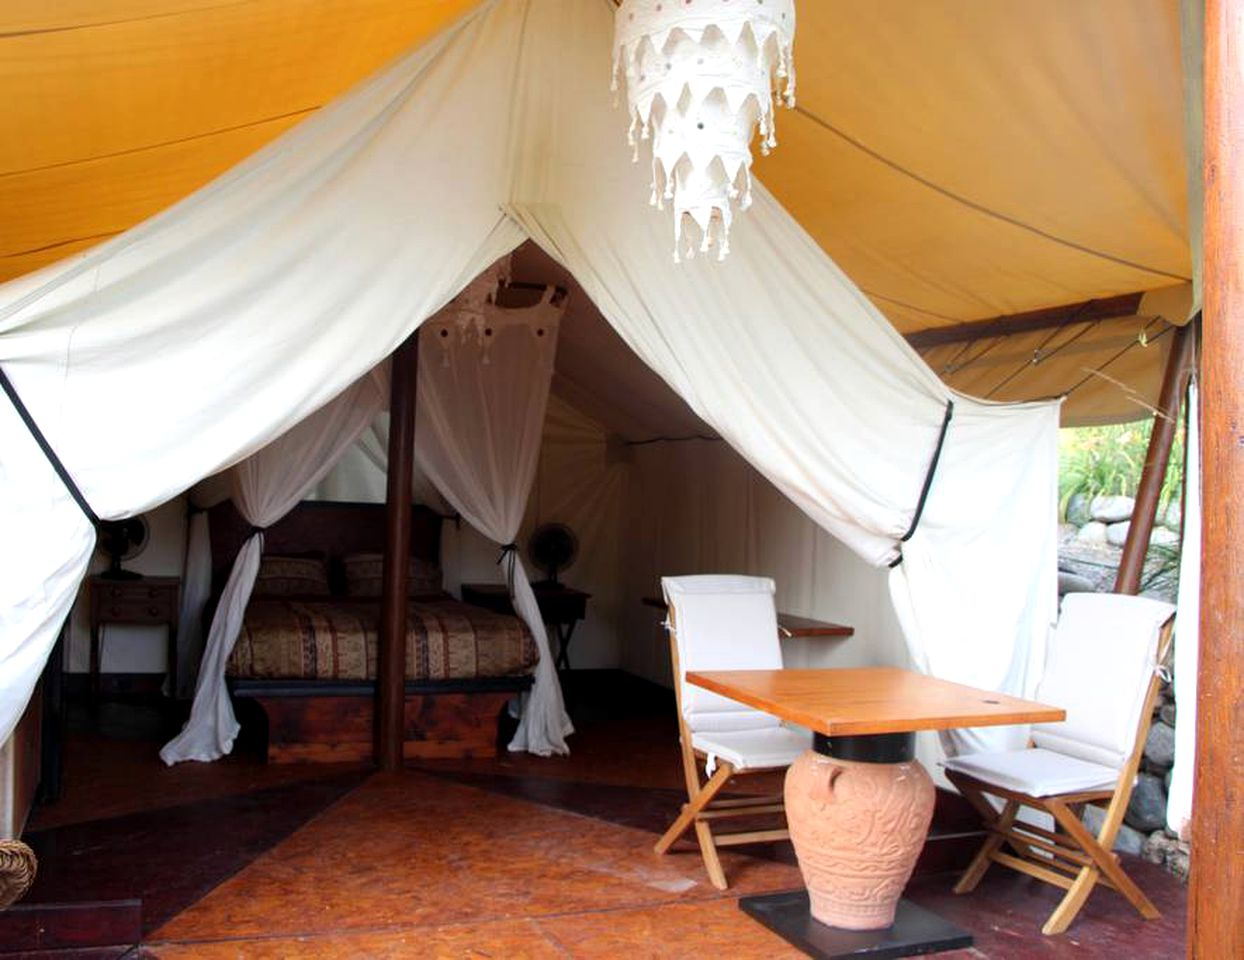 Safari Tents (Penticton, British Columbia, Canada)